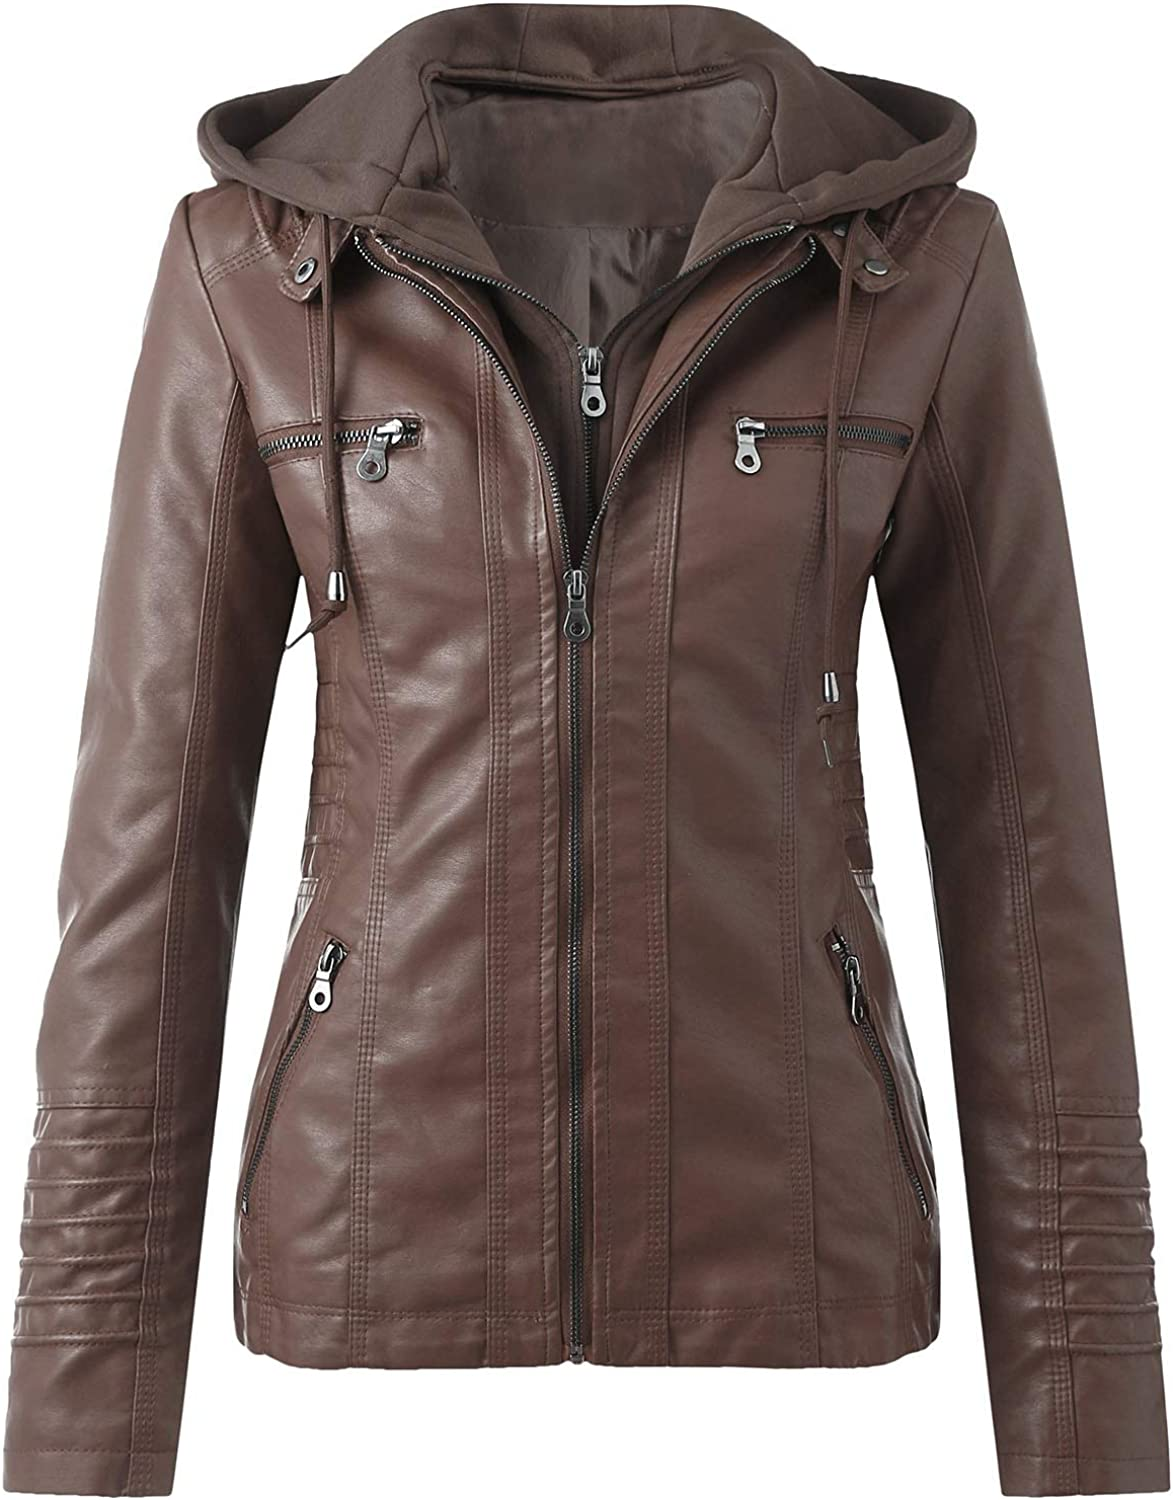 Tynelles Womens Faux Leather Motorcycle Jacket Zip Up Fitted Slim Coat Biker Outwear with Hood Short PU Jacket with Pocket Brown